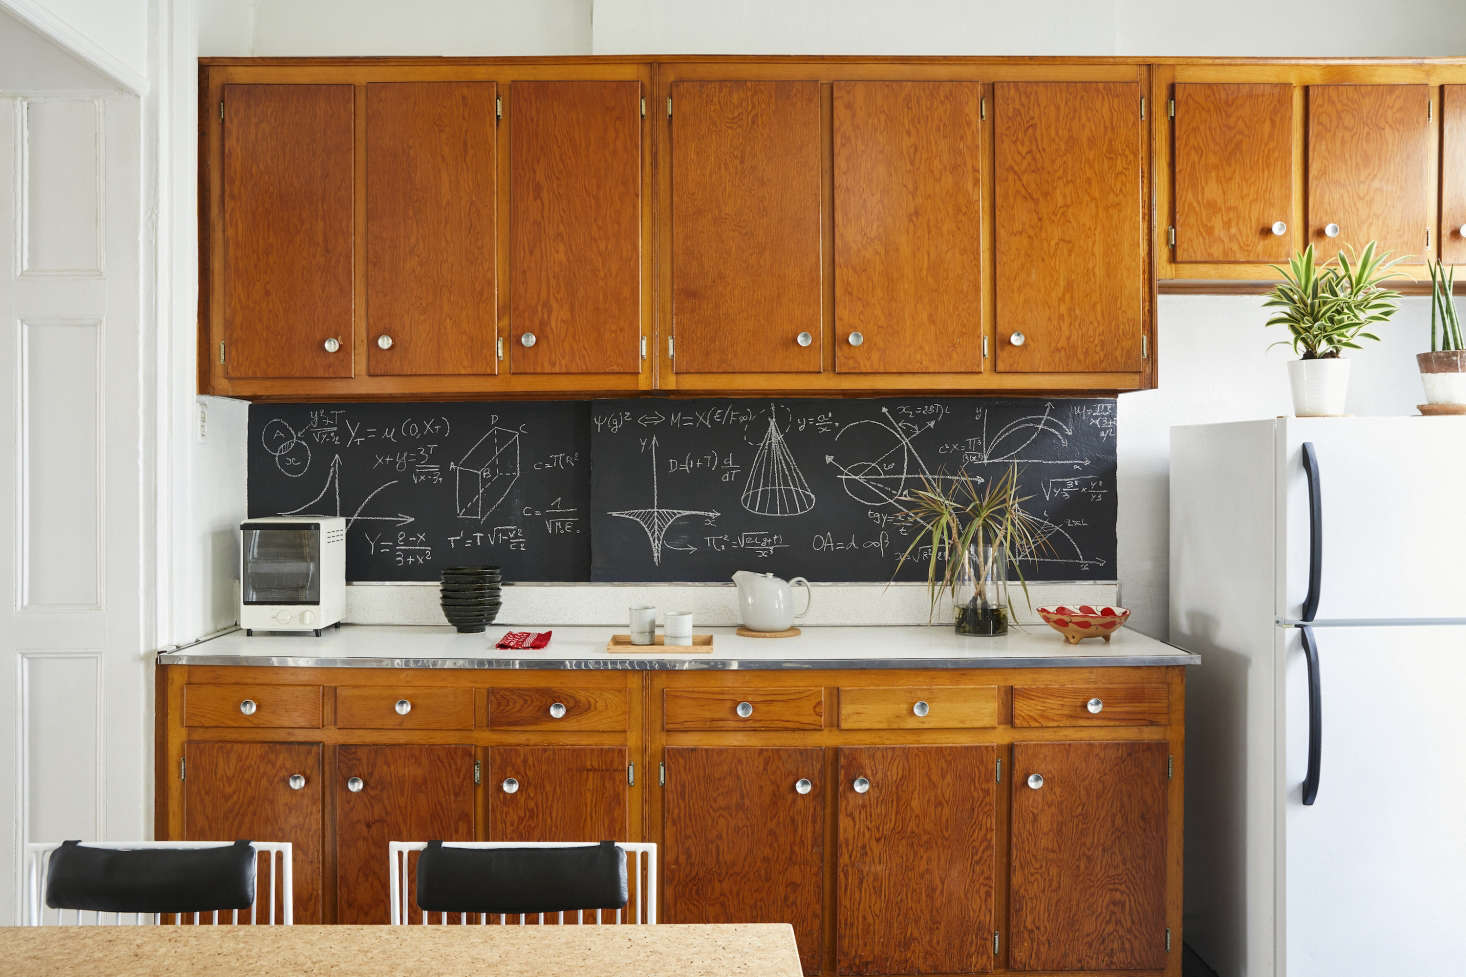 """The kitchen is a room of unexpected details. Valentin created a DIY backsplash using a slab of wood painted with chalkboard paint. Using chalk, he created a diagram of mathematic formulas that """"contributes to the kitchen's investigative effect."""" The toaster is aMuji Vertical Toaster Oven that, along with the ceramic dishes and furoshiki cloth, Valentin bought while living in Tokyo."""